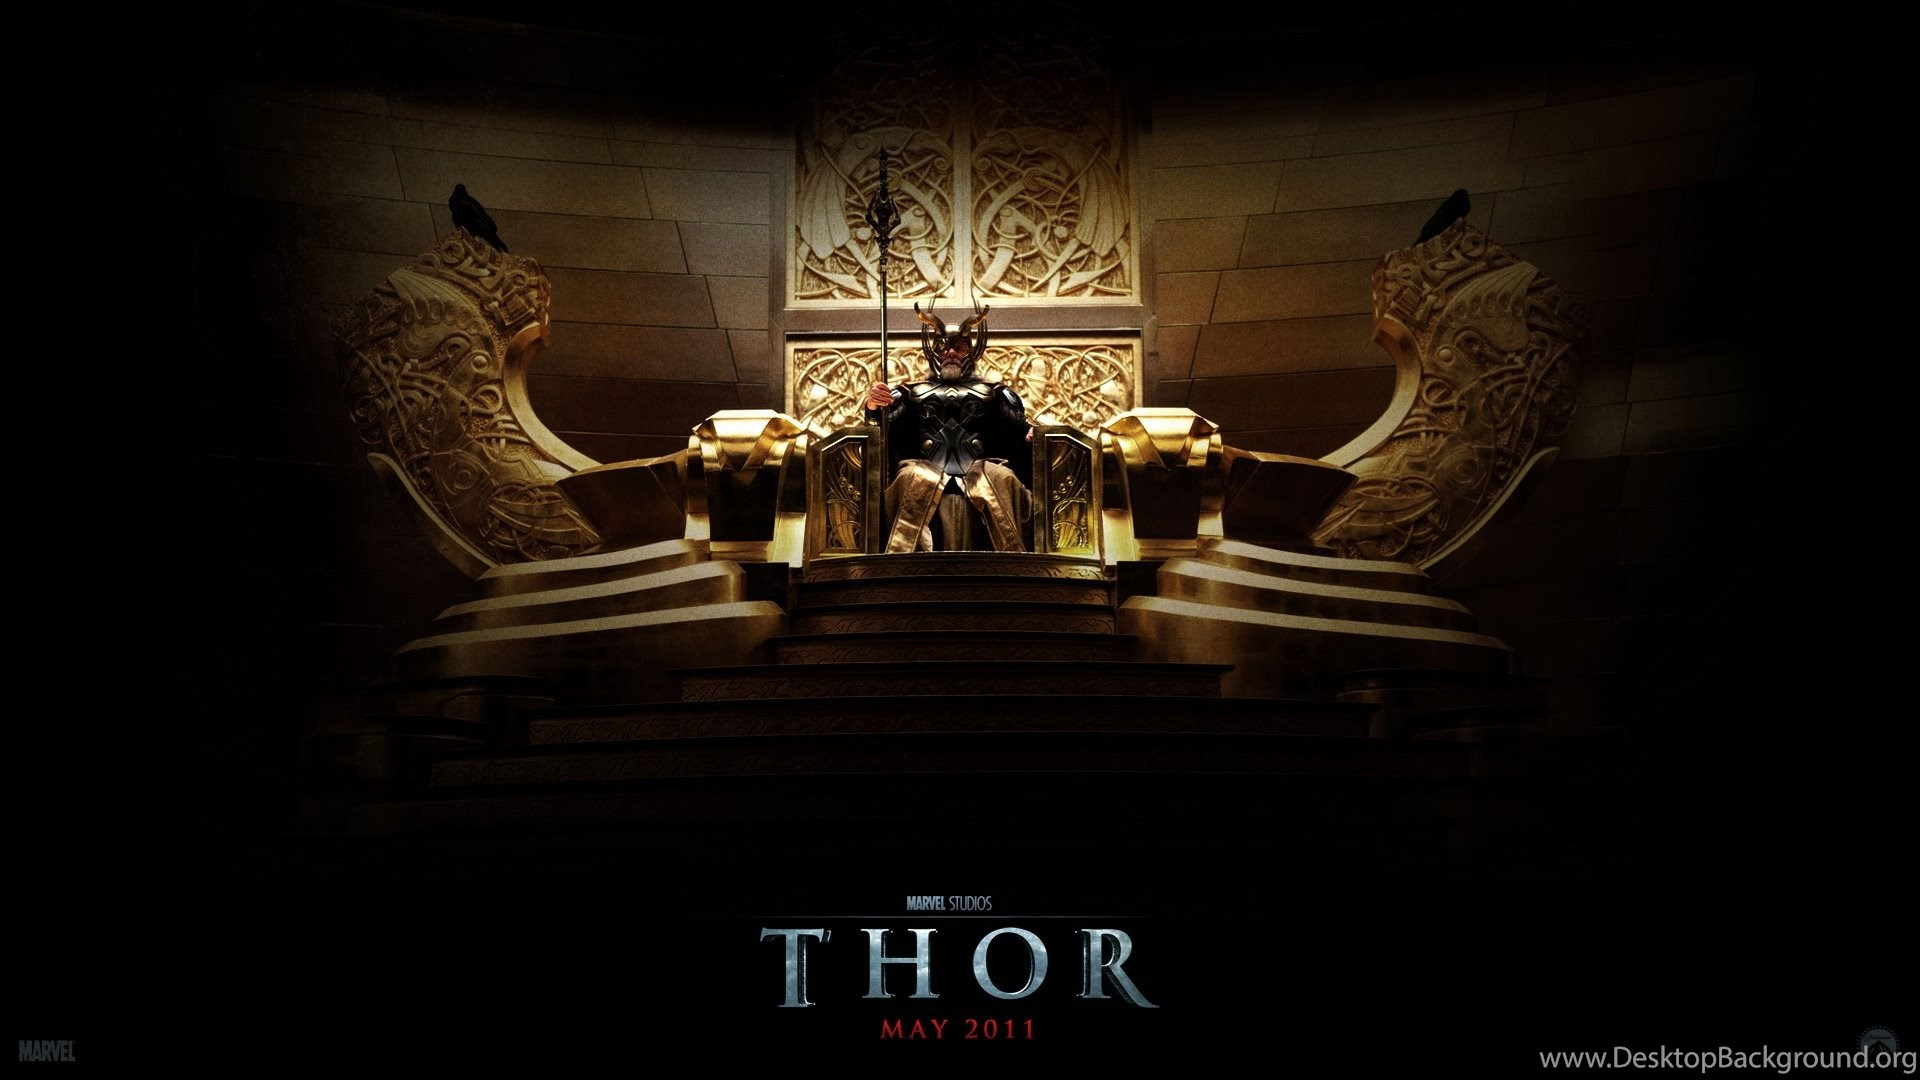 Wallpapers thor movie poster backgrounds 1920x1080 desktop background 1366x768 1920x1080 360x640 voltagebd Image collections